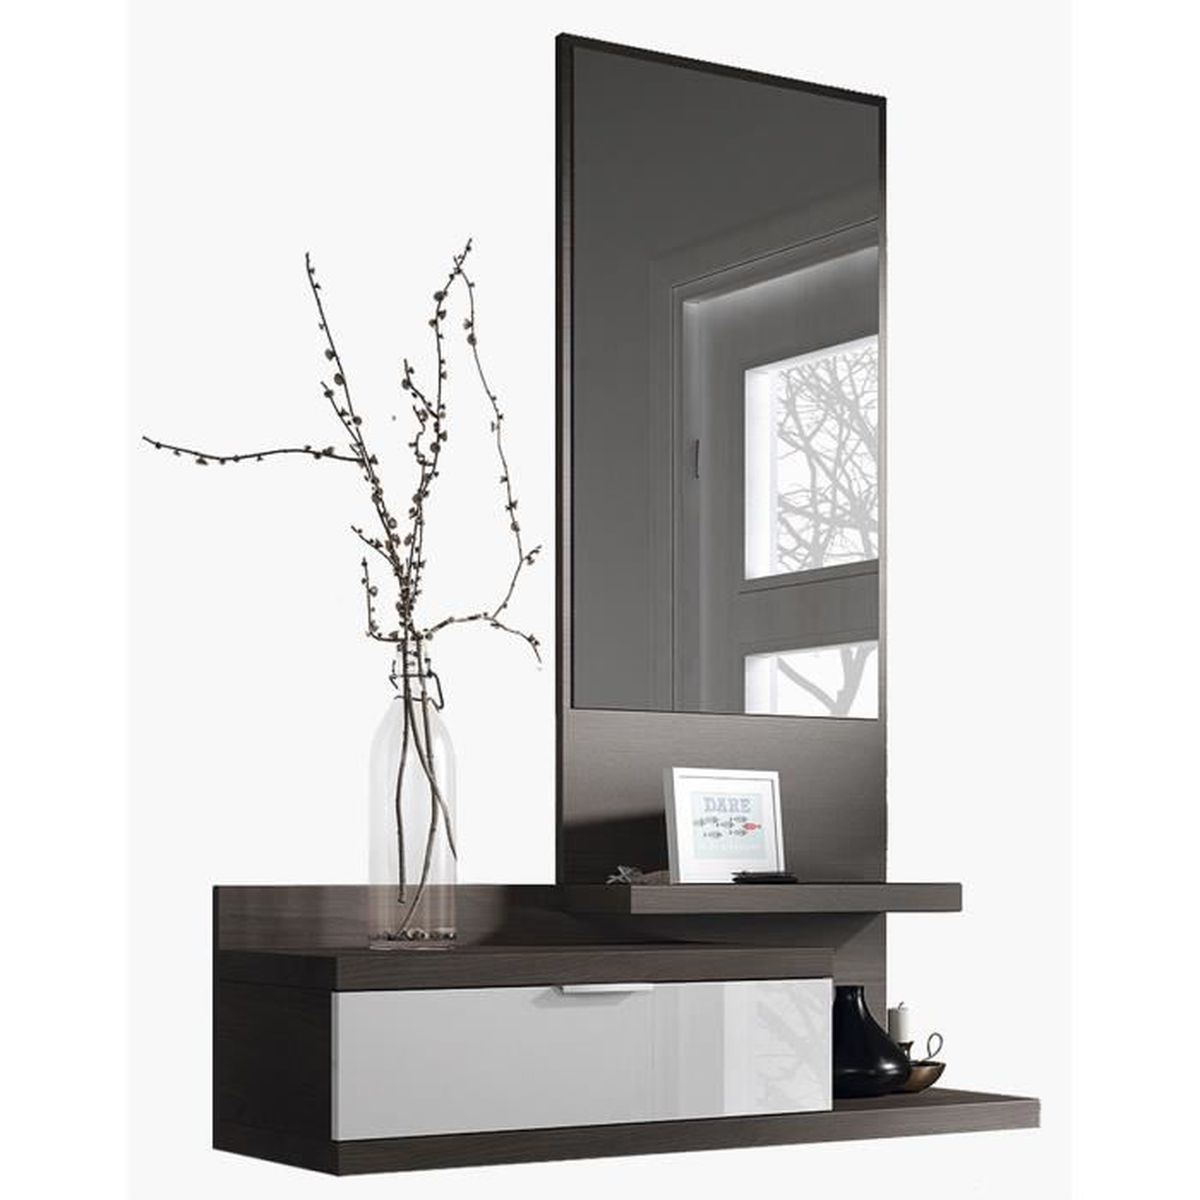 miroir original pas cher maison design. Black Bedroom Furniture Sets. Home Design Ideas